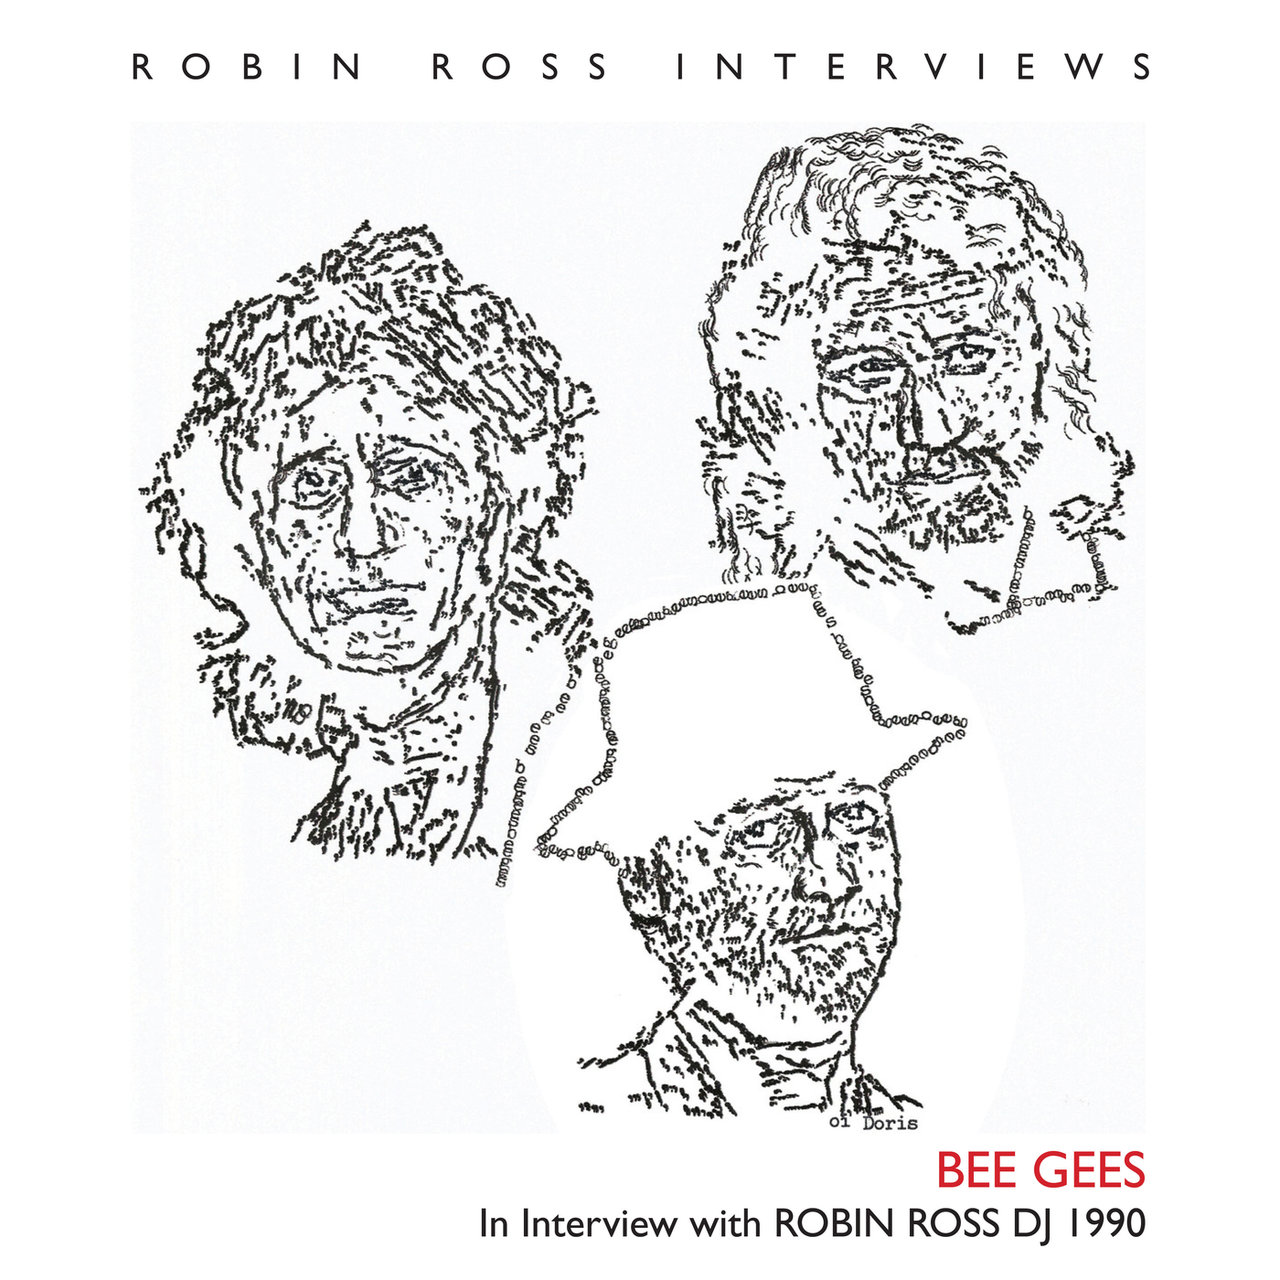 Interview with Robin Ross DJ 1990